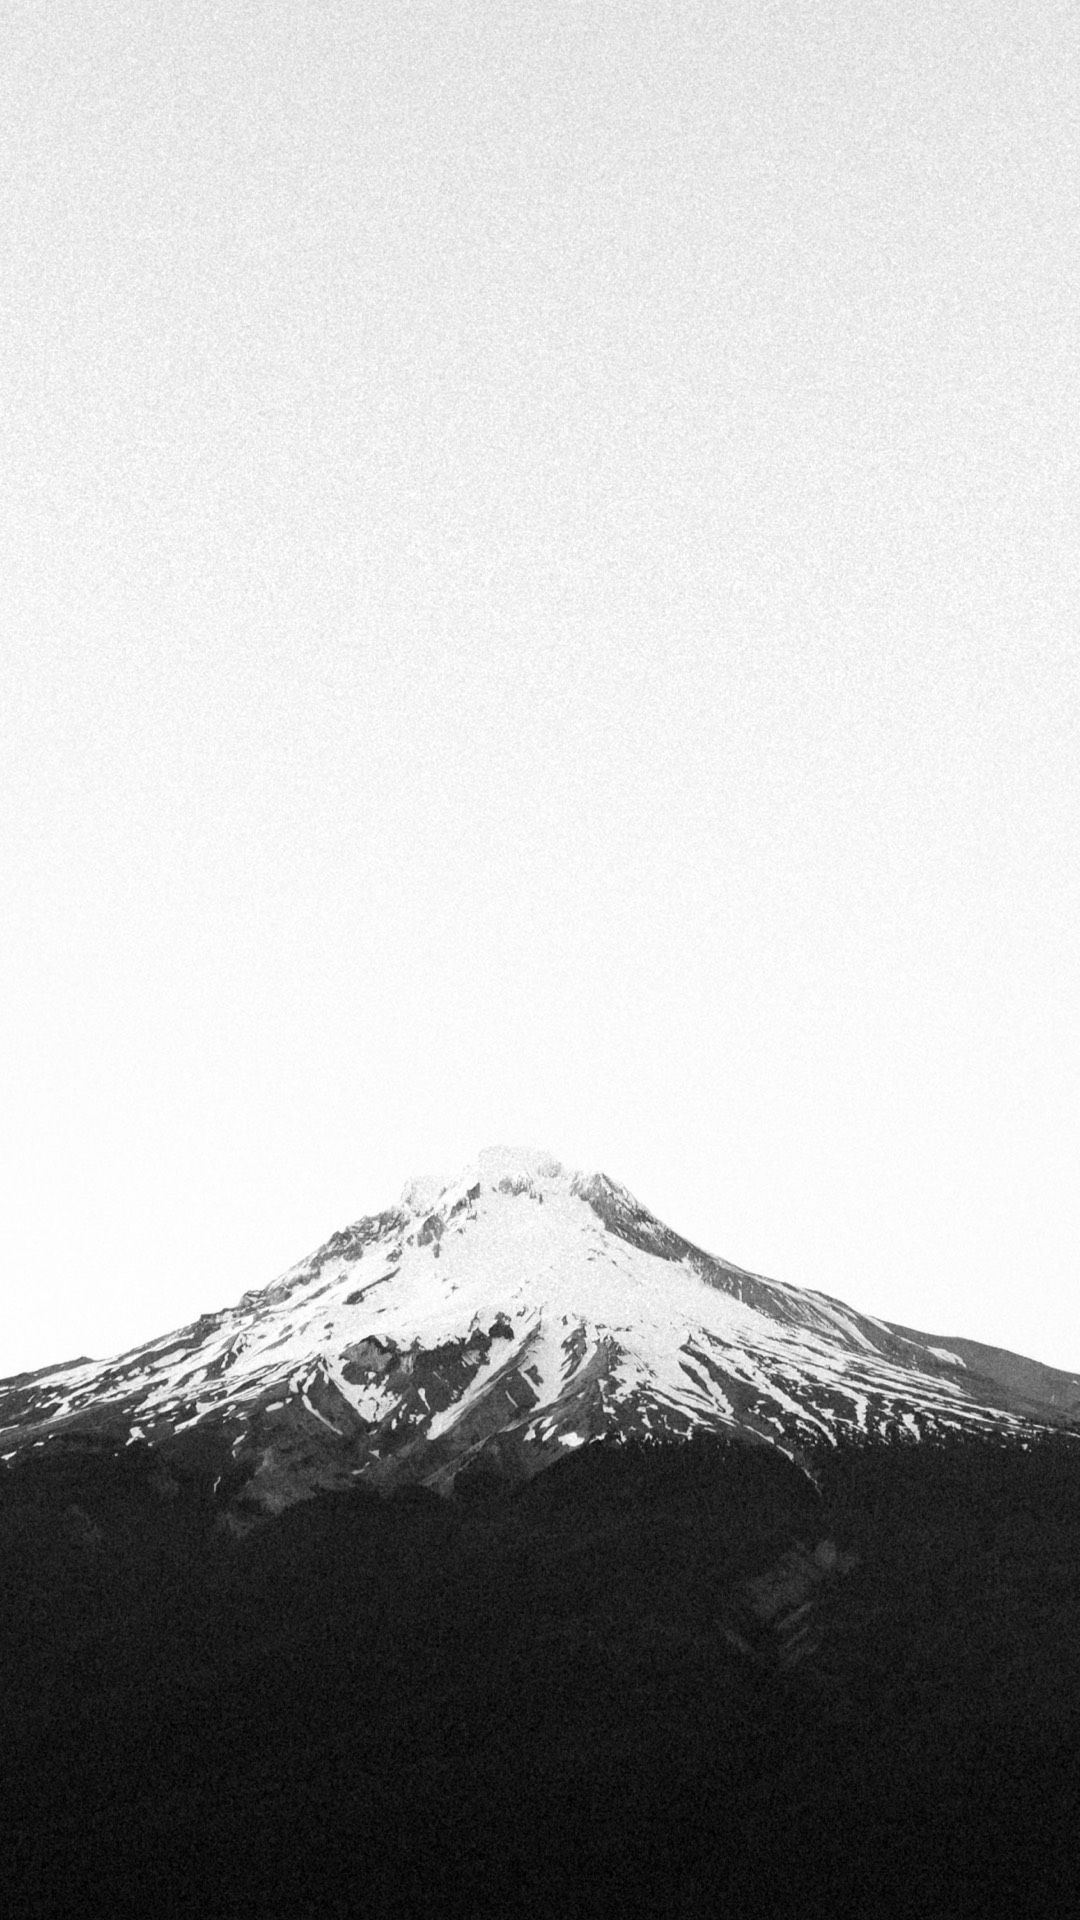 Black And White Mountain 10 Stunning Minimalistic Phone Wallpapers Iphone Wallpaper Images Backgrounds Phone Wallpapers Phone Wallpaper